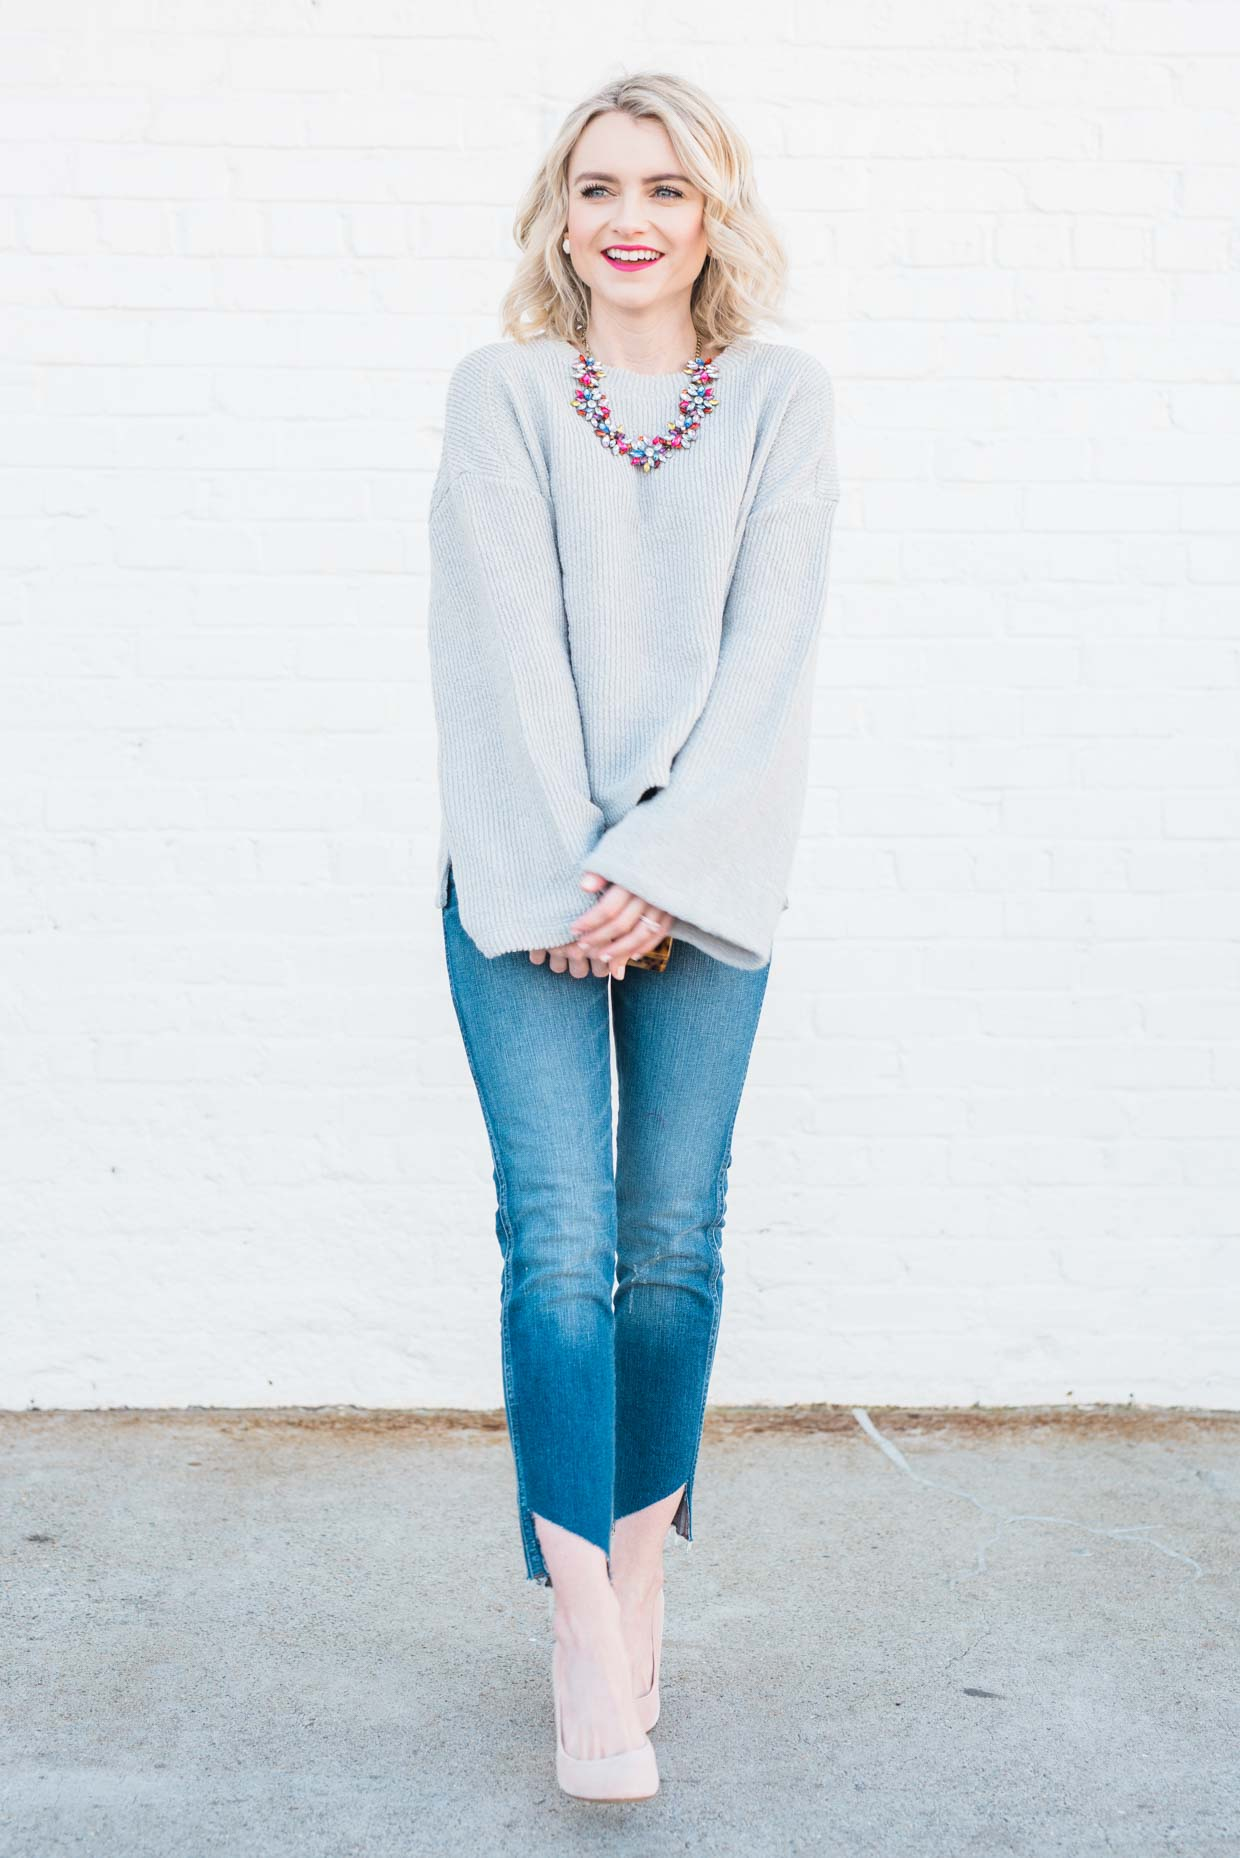 e8275e1ef2a Why I Love Madewell Petite Jeans - Poor Little It Girl